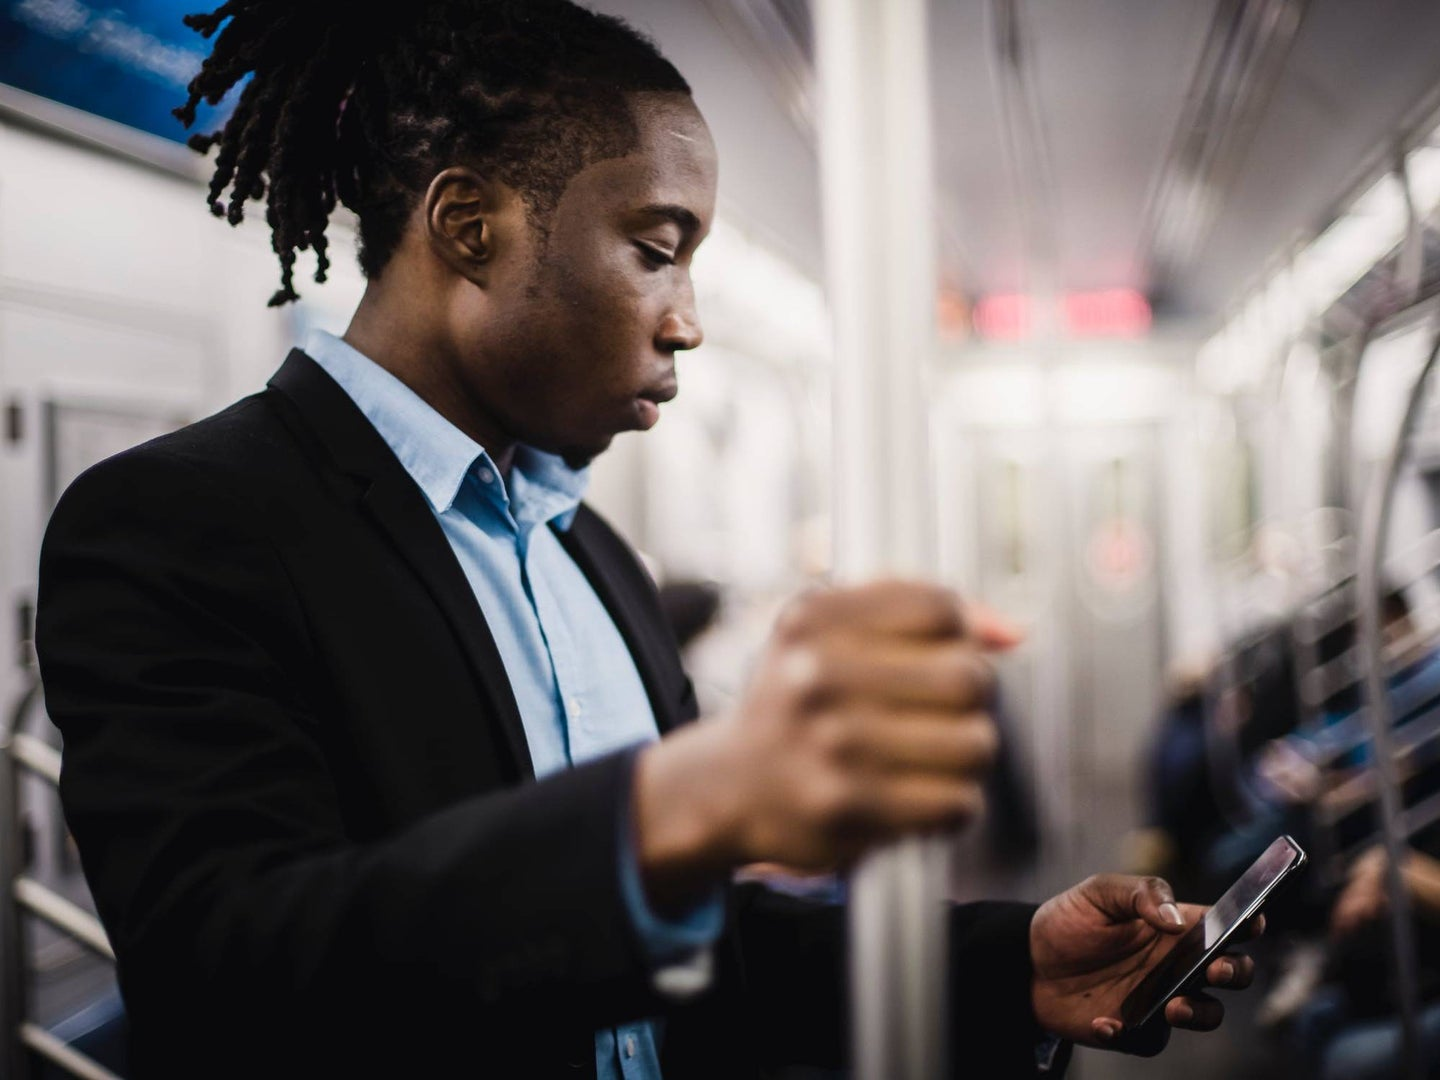 Person in New York train texting on their phone.